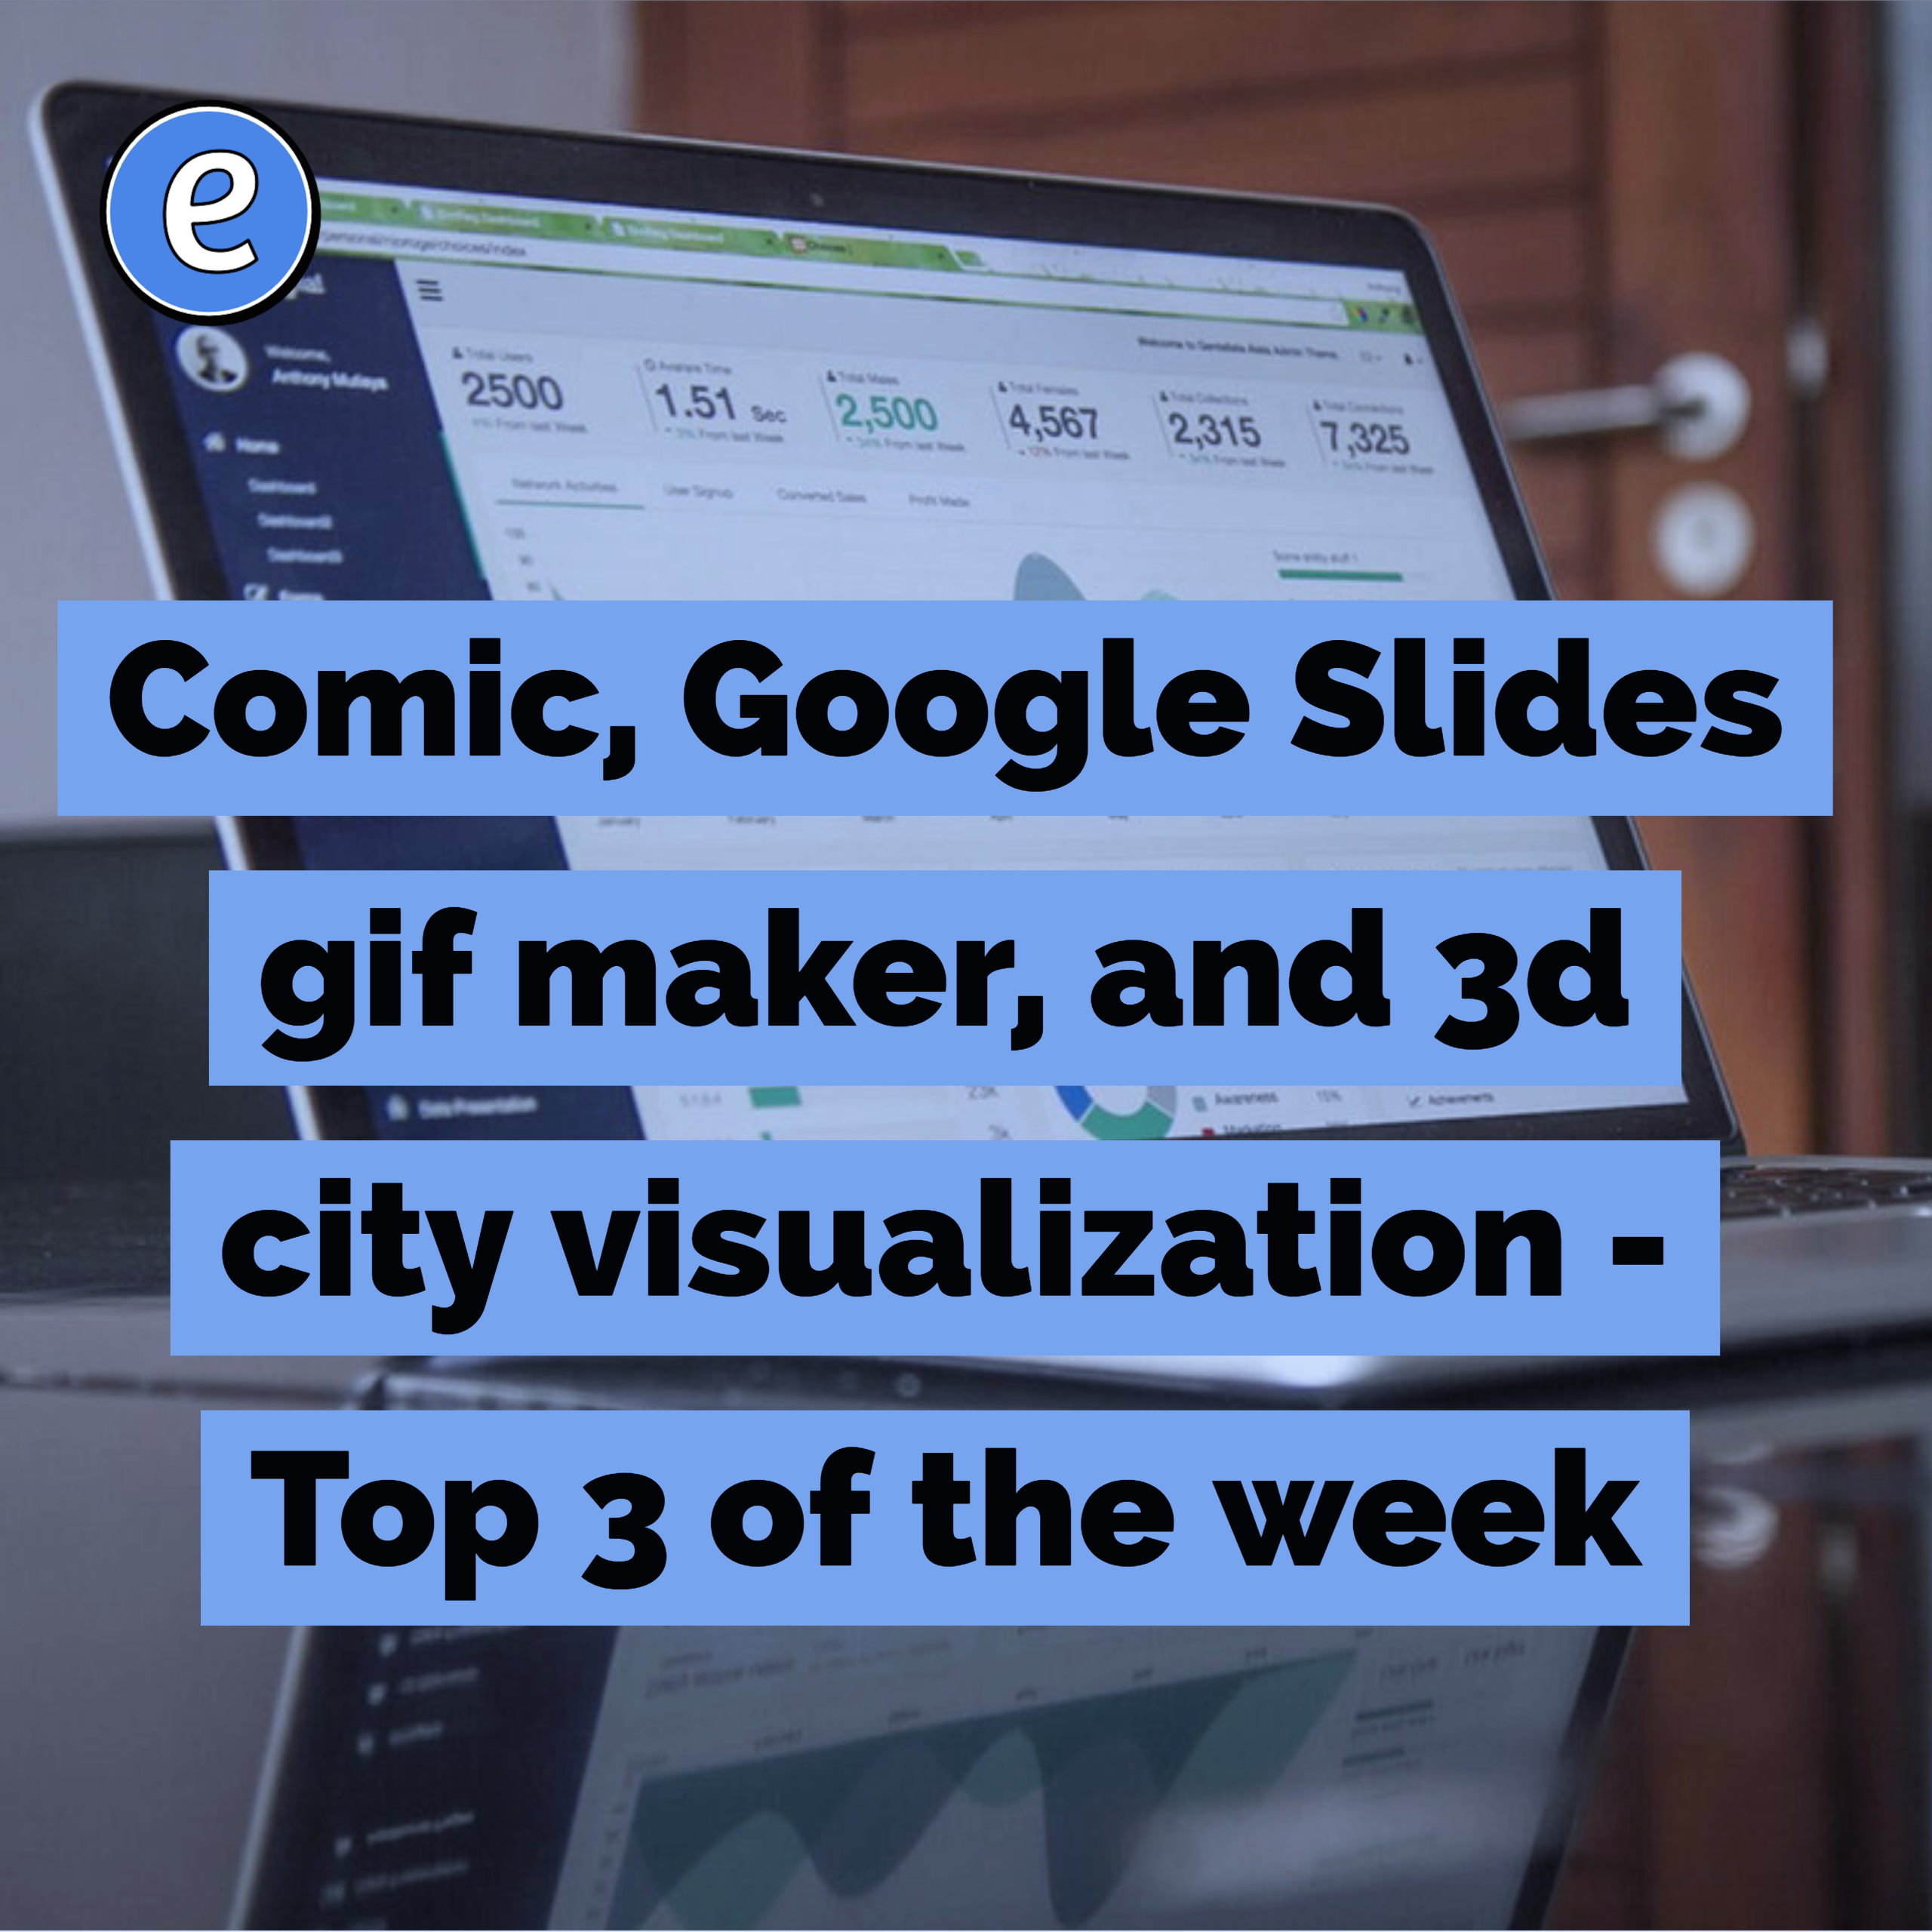 Comic, Google Slides gif maker, and 3d city visualization – Top 3 of the week